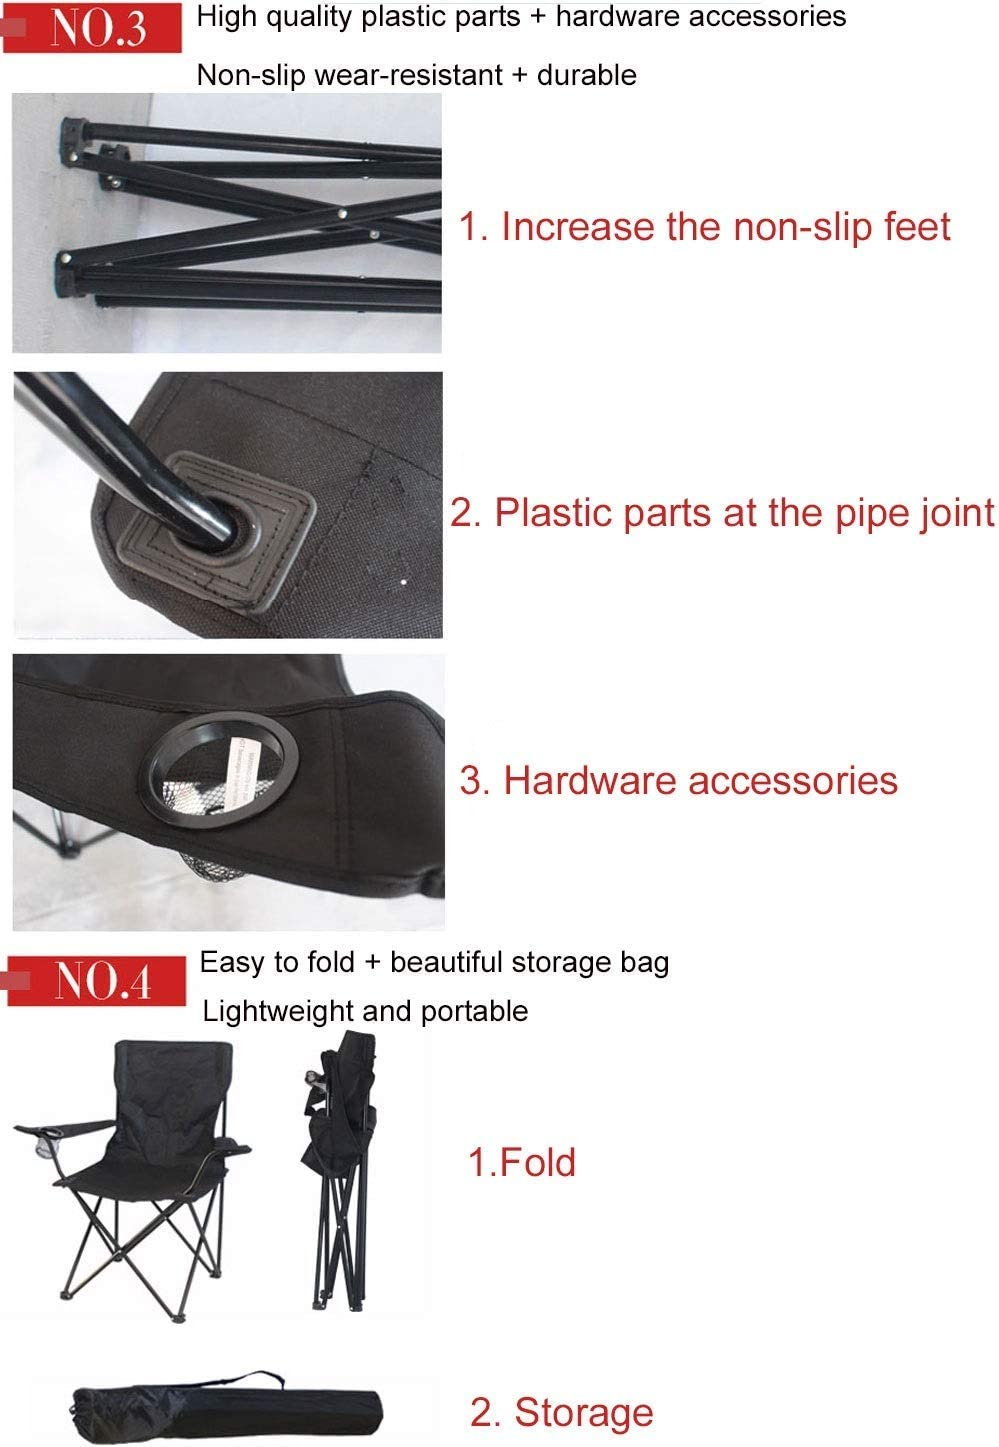 Outdoor Folding Chairs, Portable Wearable Oxford Cloth Beach Chair Fishing Armchair Leisure Picnic Camping Travel Stool For Camping, Festivals, Garden Black